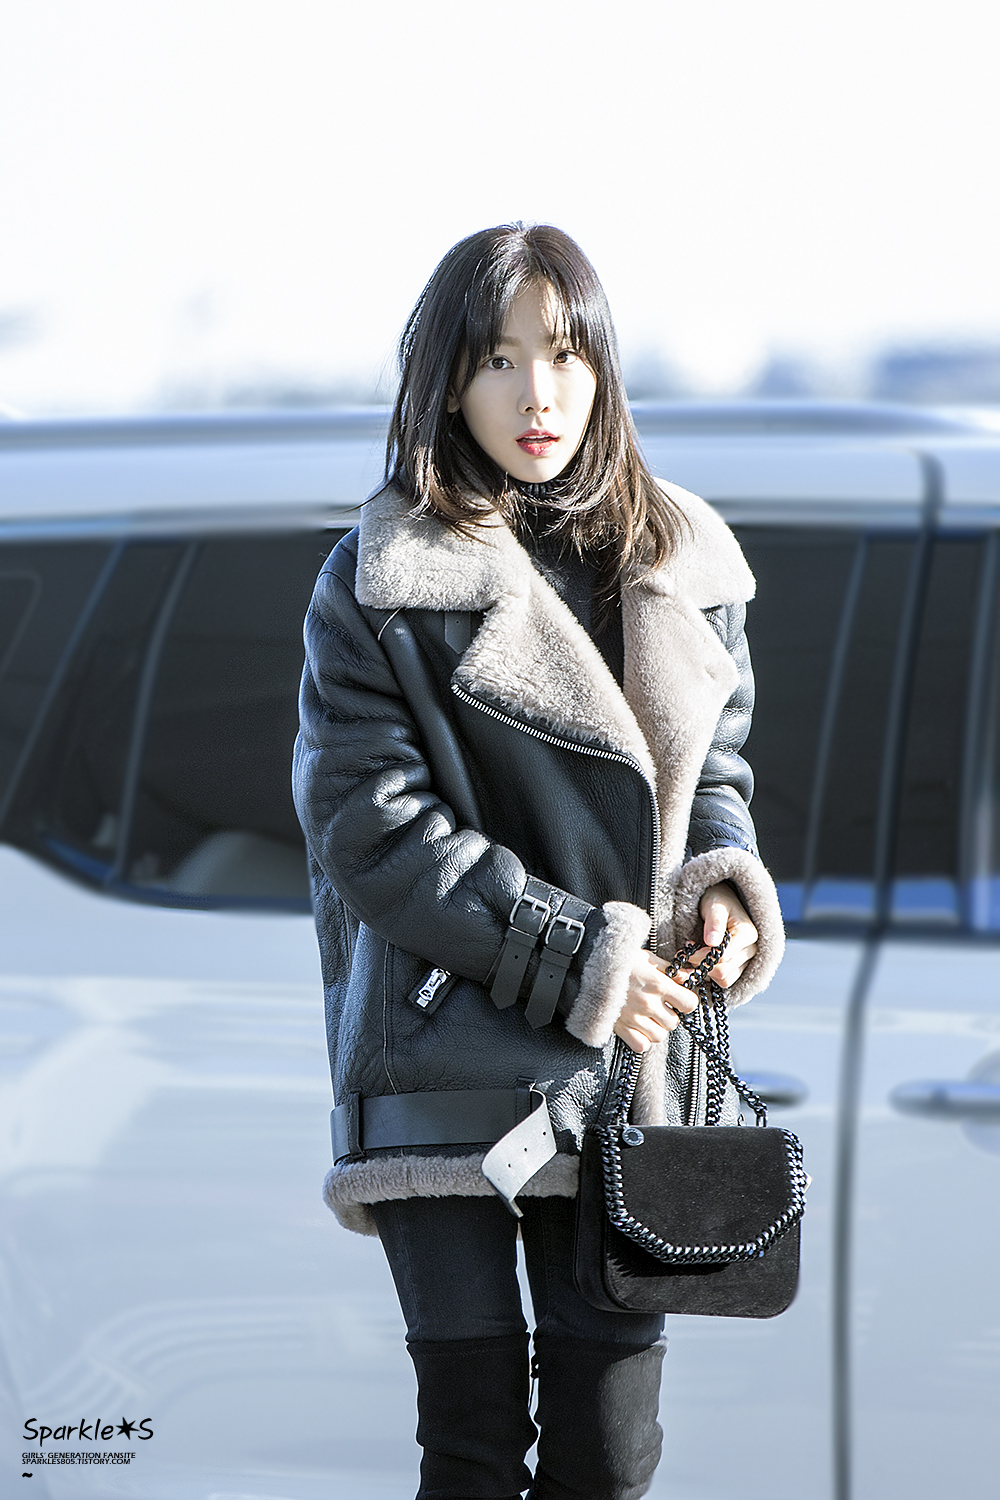 Taeyeon - 180112 Incheon Airport | Manuth Chek's SoShi Site